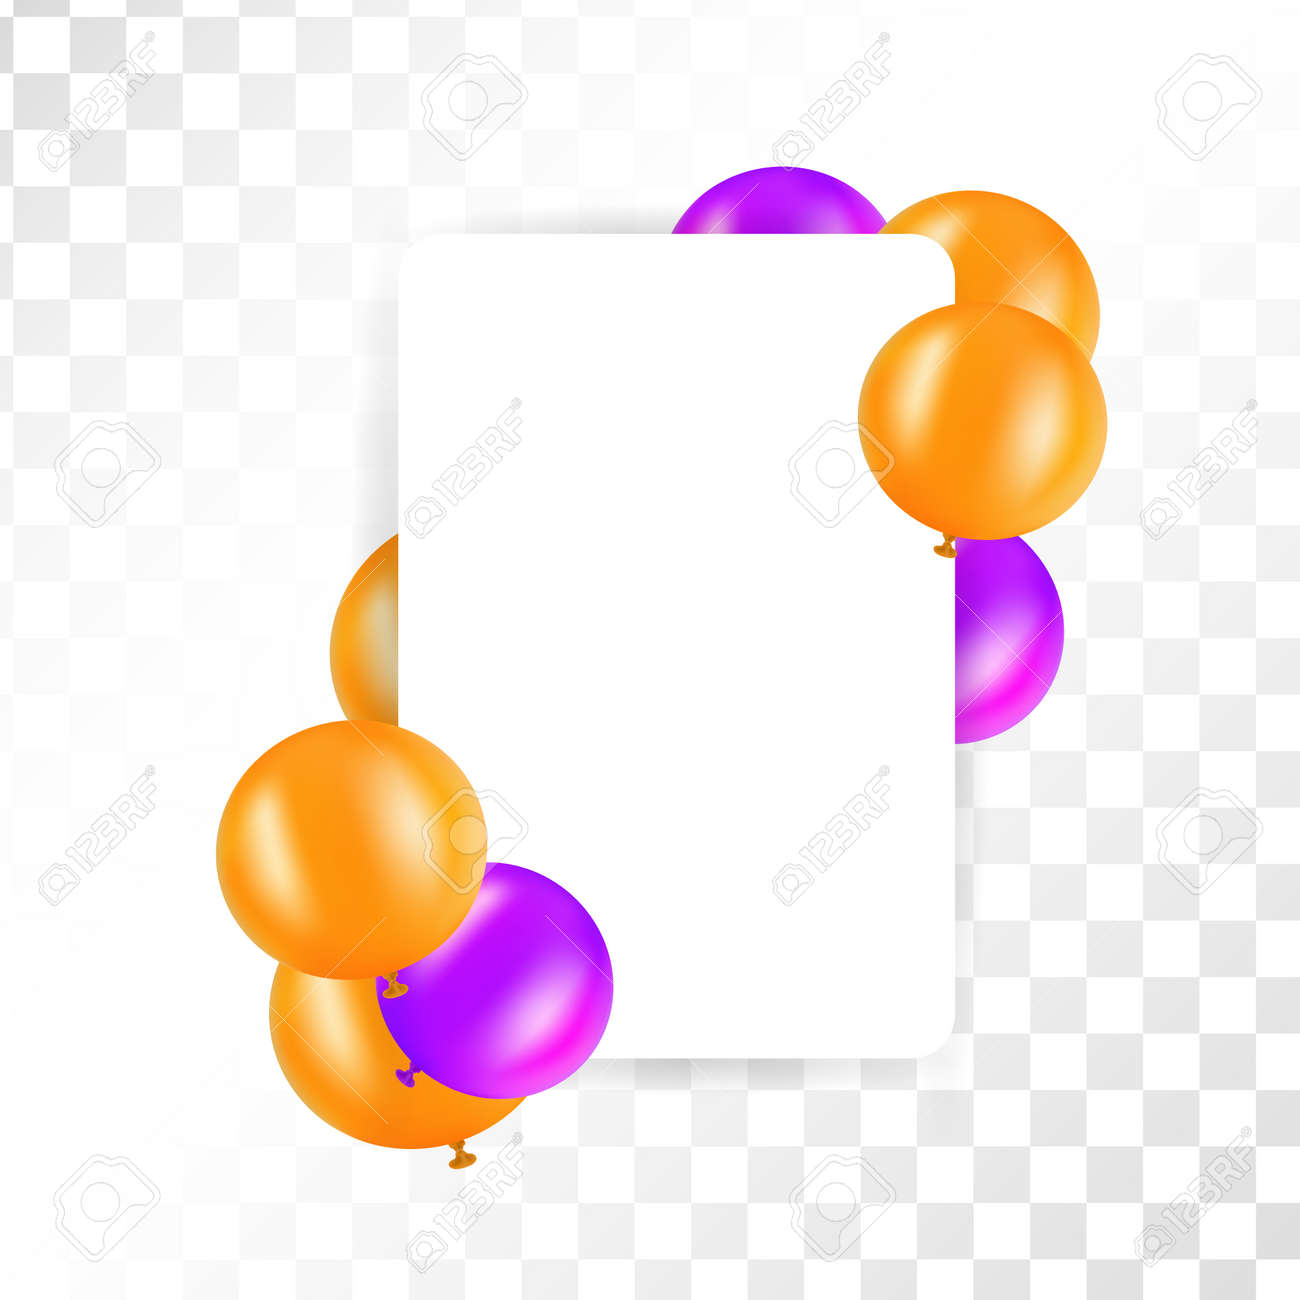 Frame of balloons on transparent background vector design for frame of balloons on transparent background vector design for greeting cards orange and purple kristyandbryce Choice Image